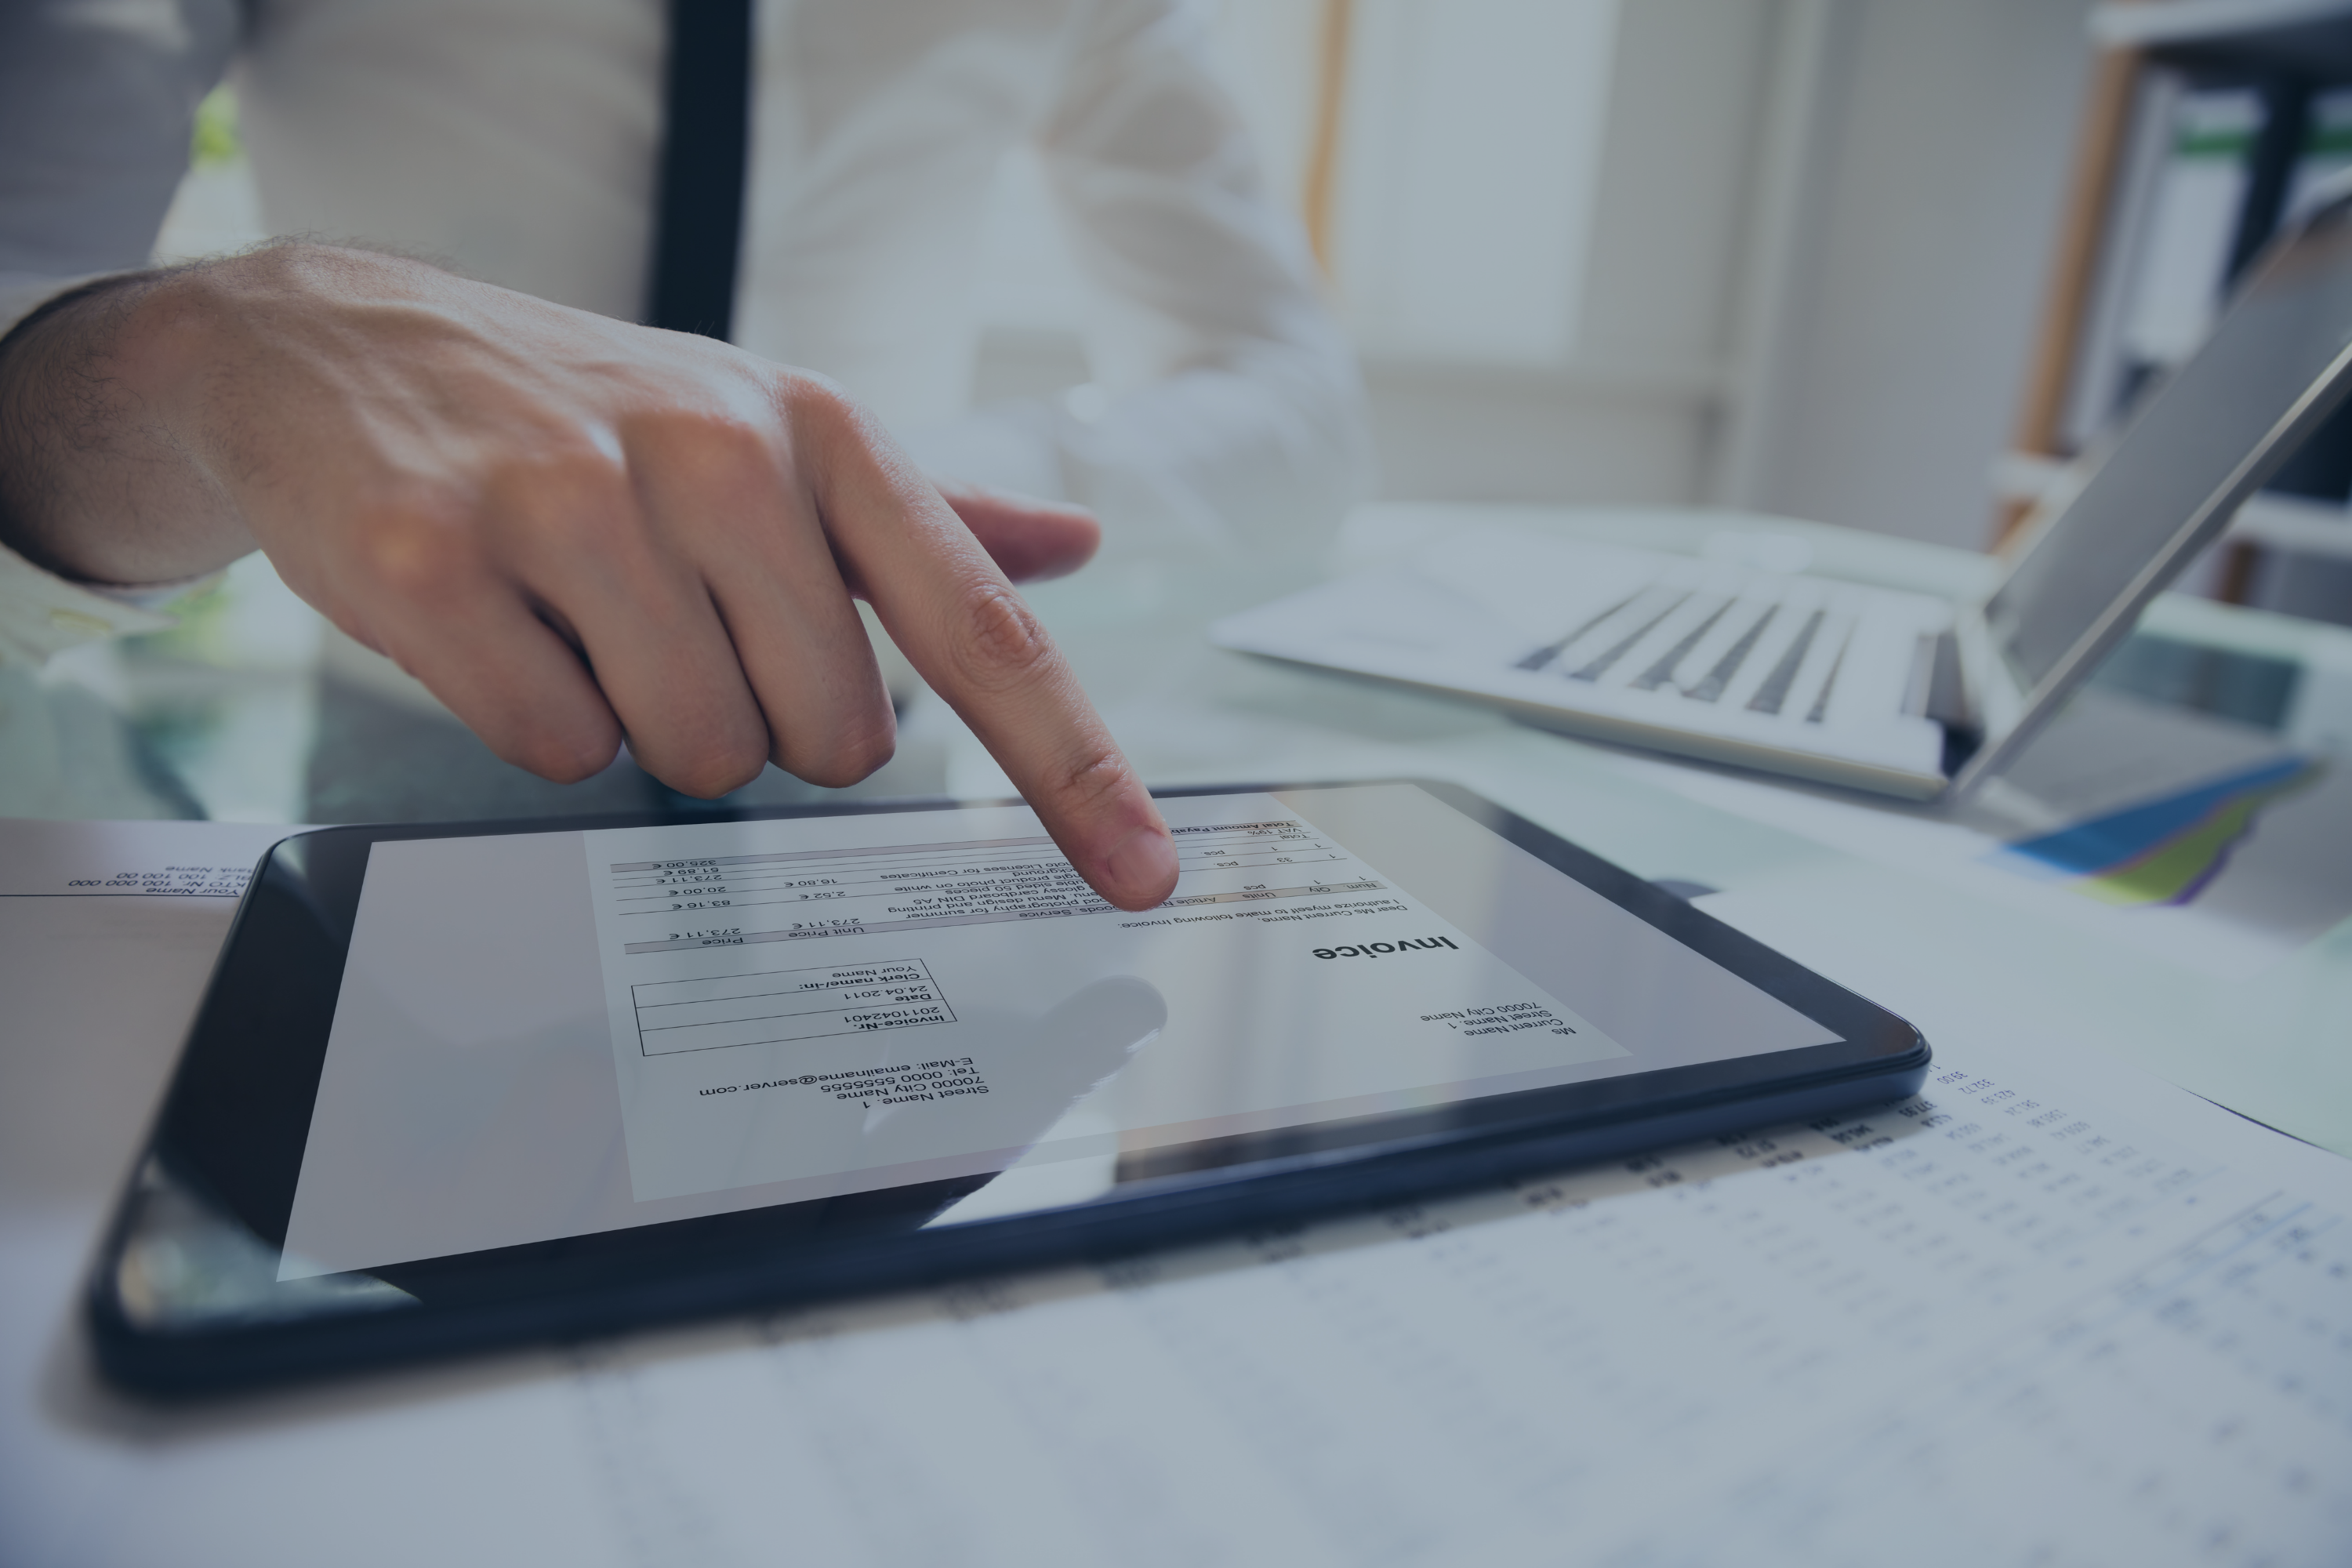 Businessperson-analyzing-invoice-on-digital-tablet